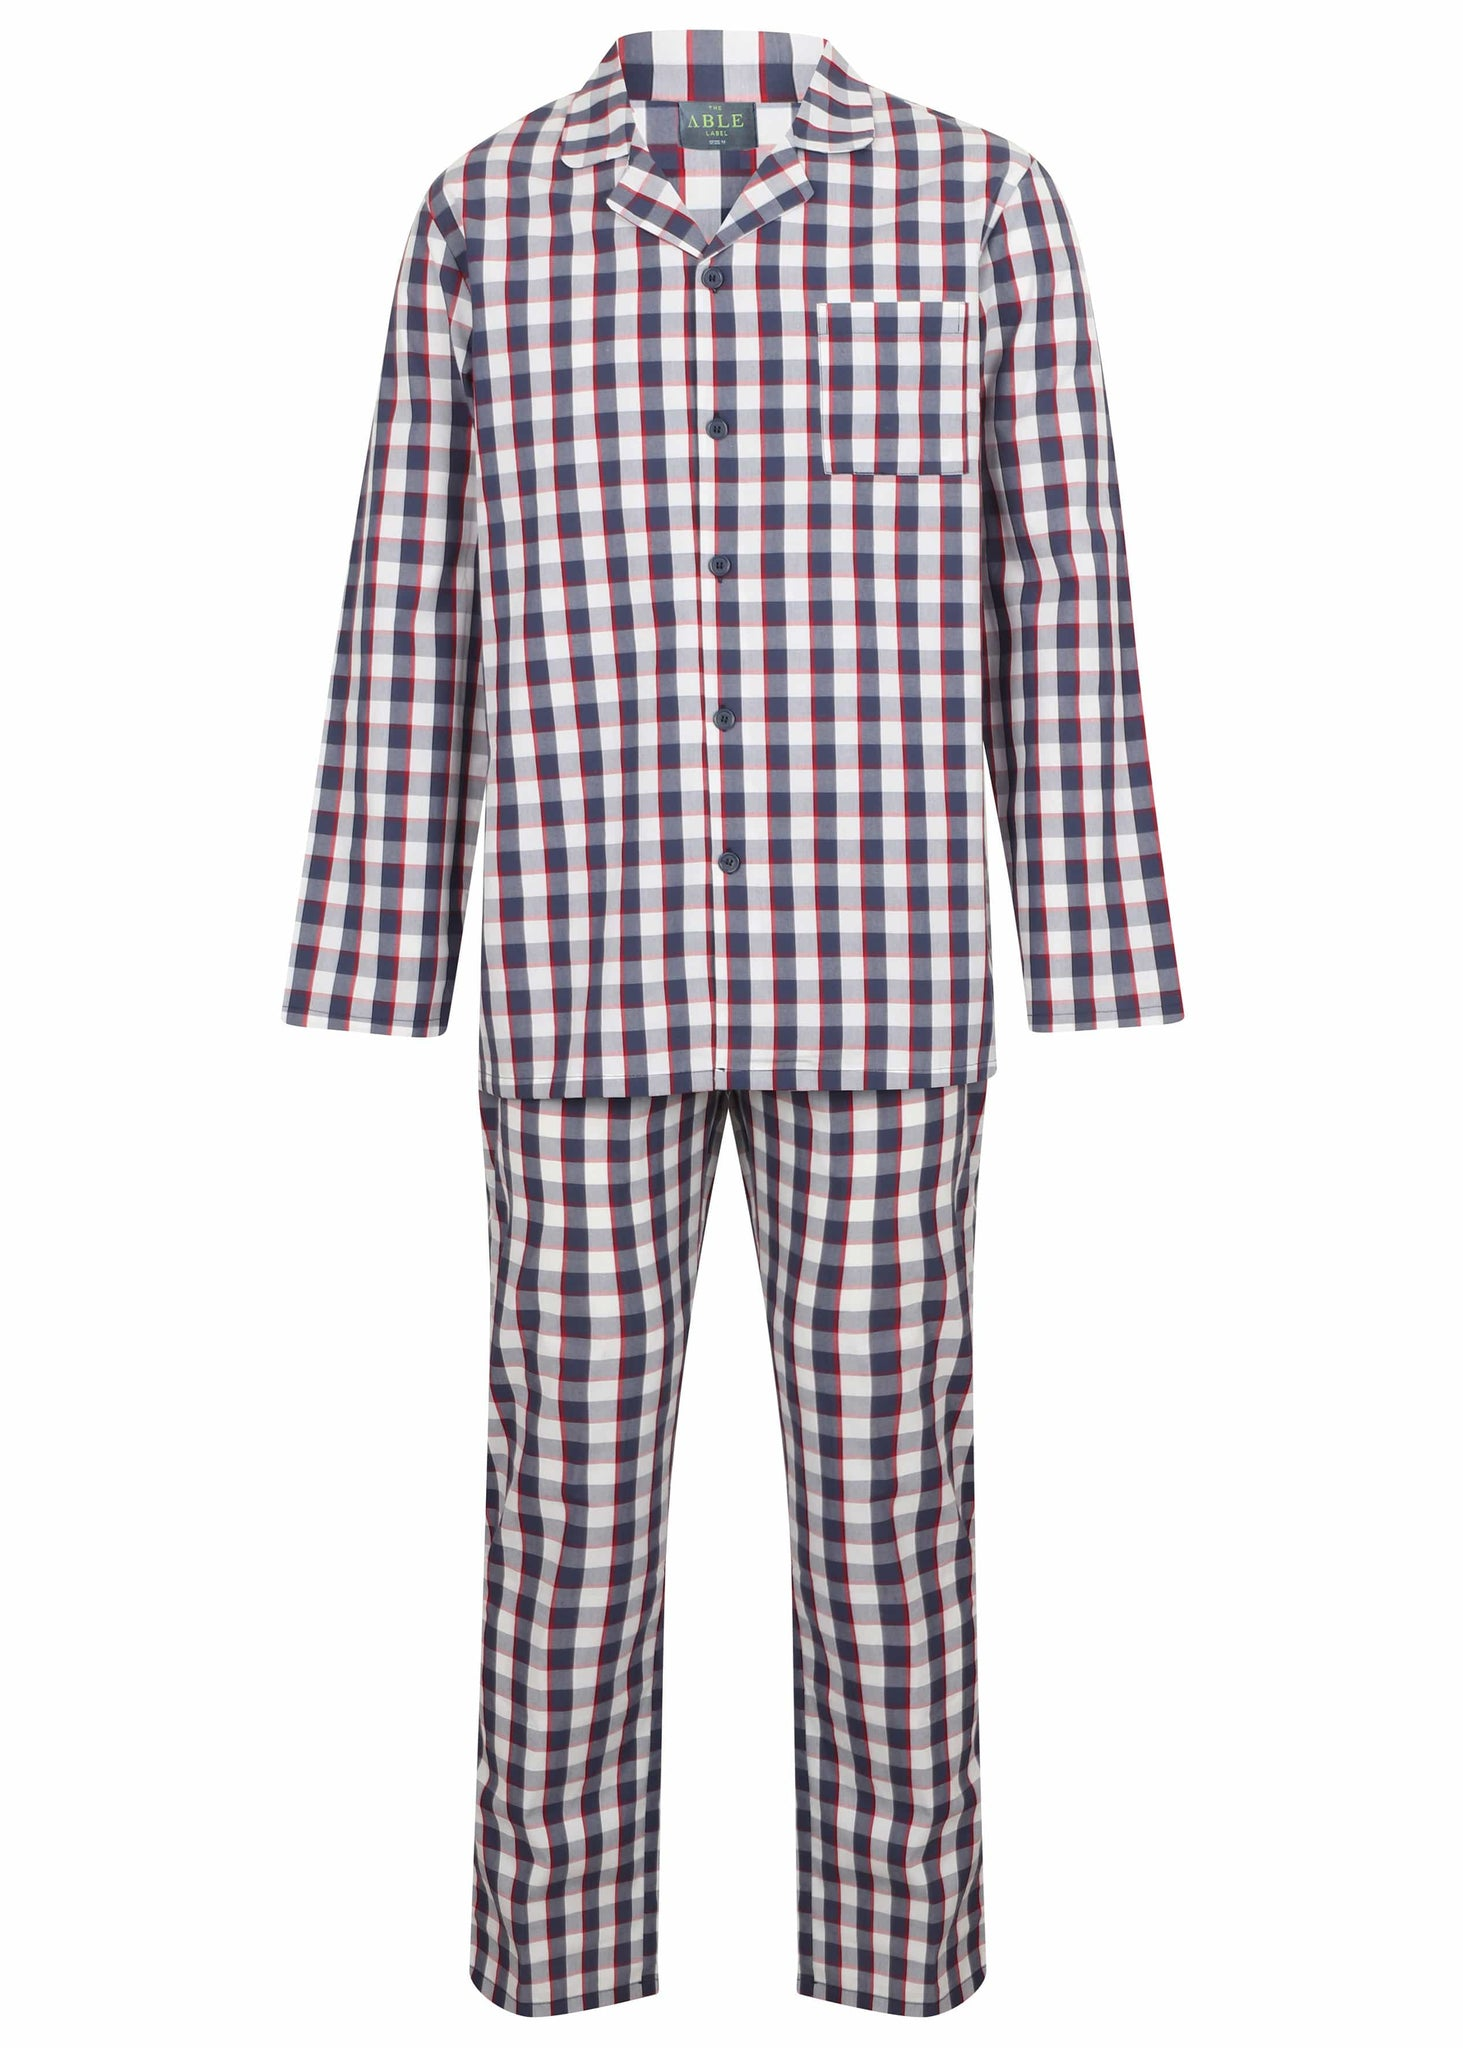 The Able Label Matthew Pure Cotton Velcro Shirt & Pull On Bottoms PJ Set